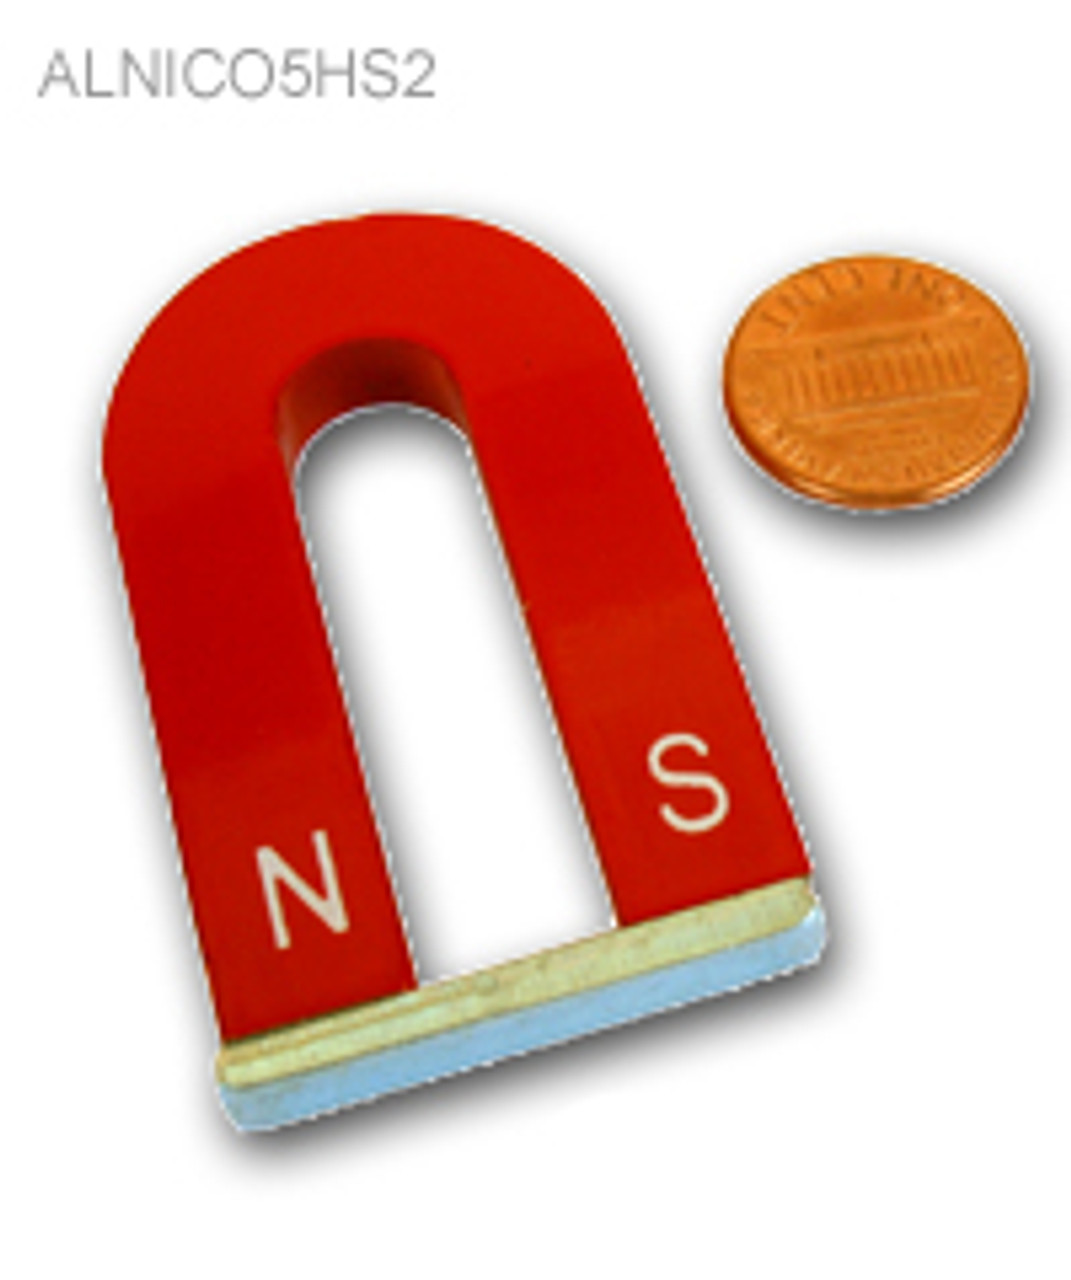 "Horseshoe Magnet, 2"" with N & S Indication, ALNICO 5"